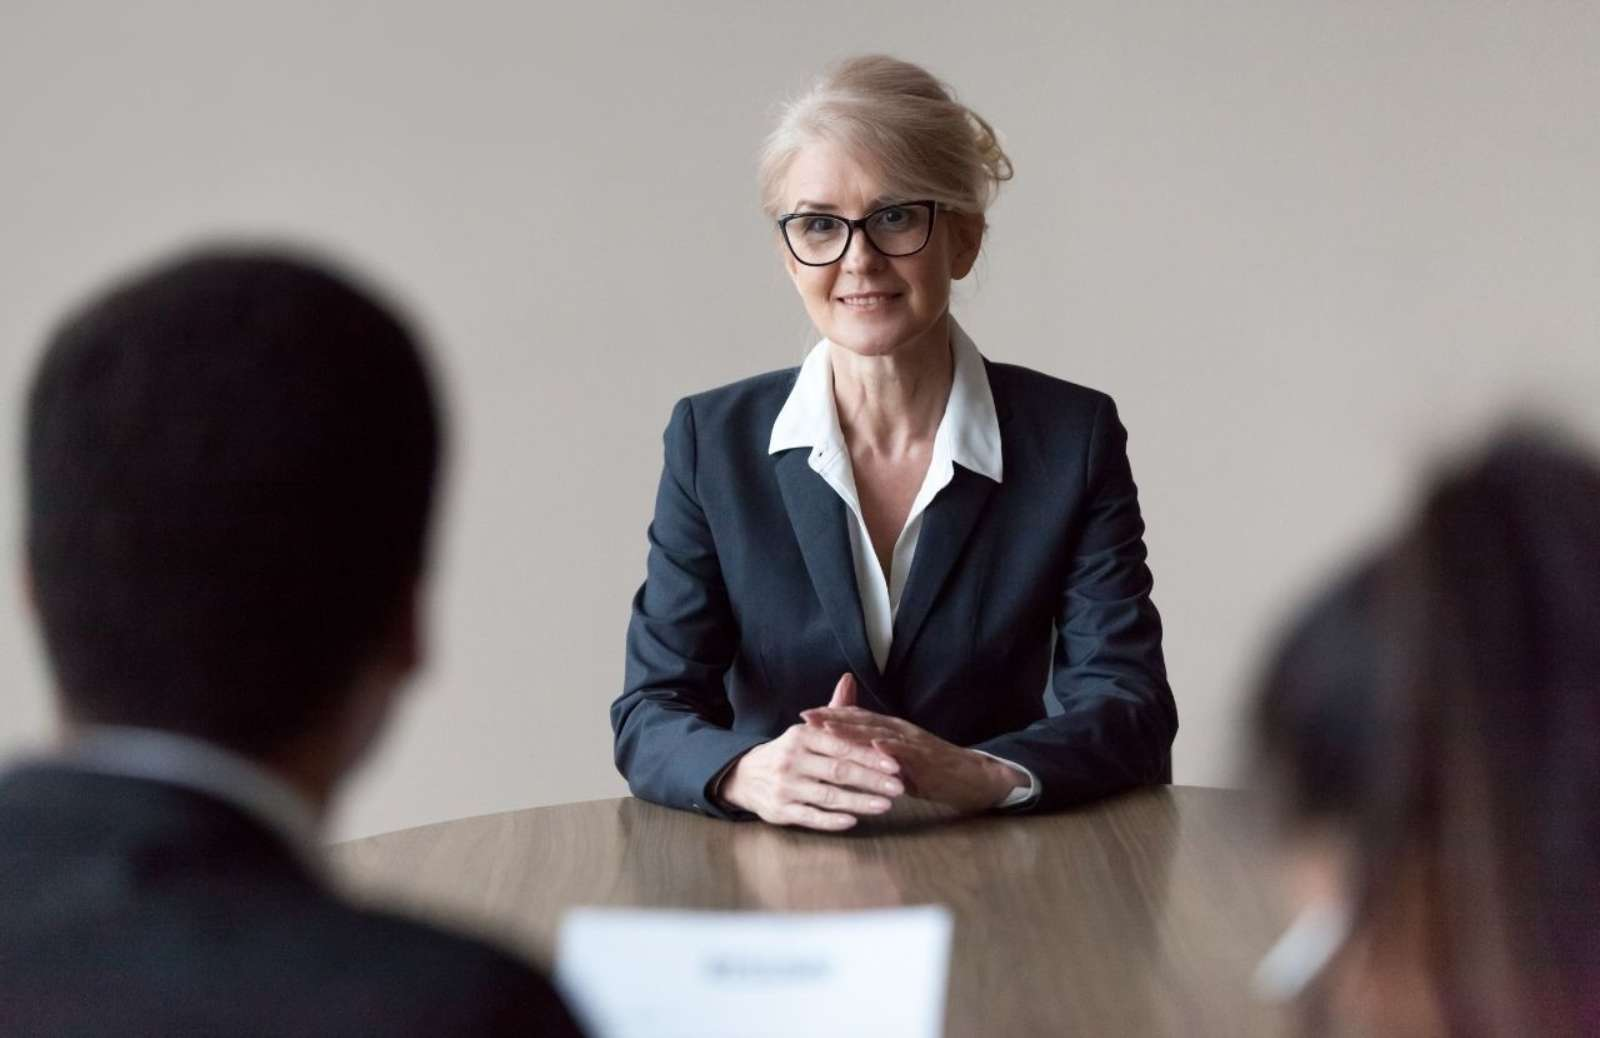 Smiling middle aged female job applicant making first impression at interview